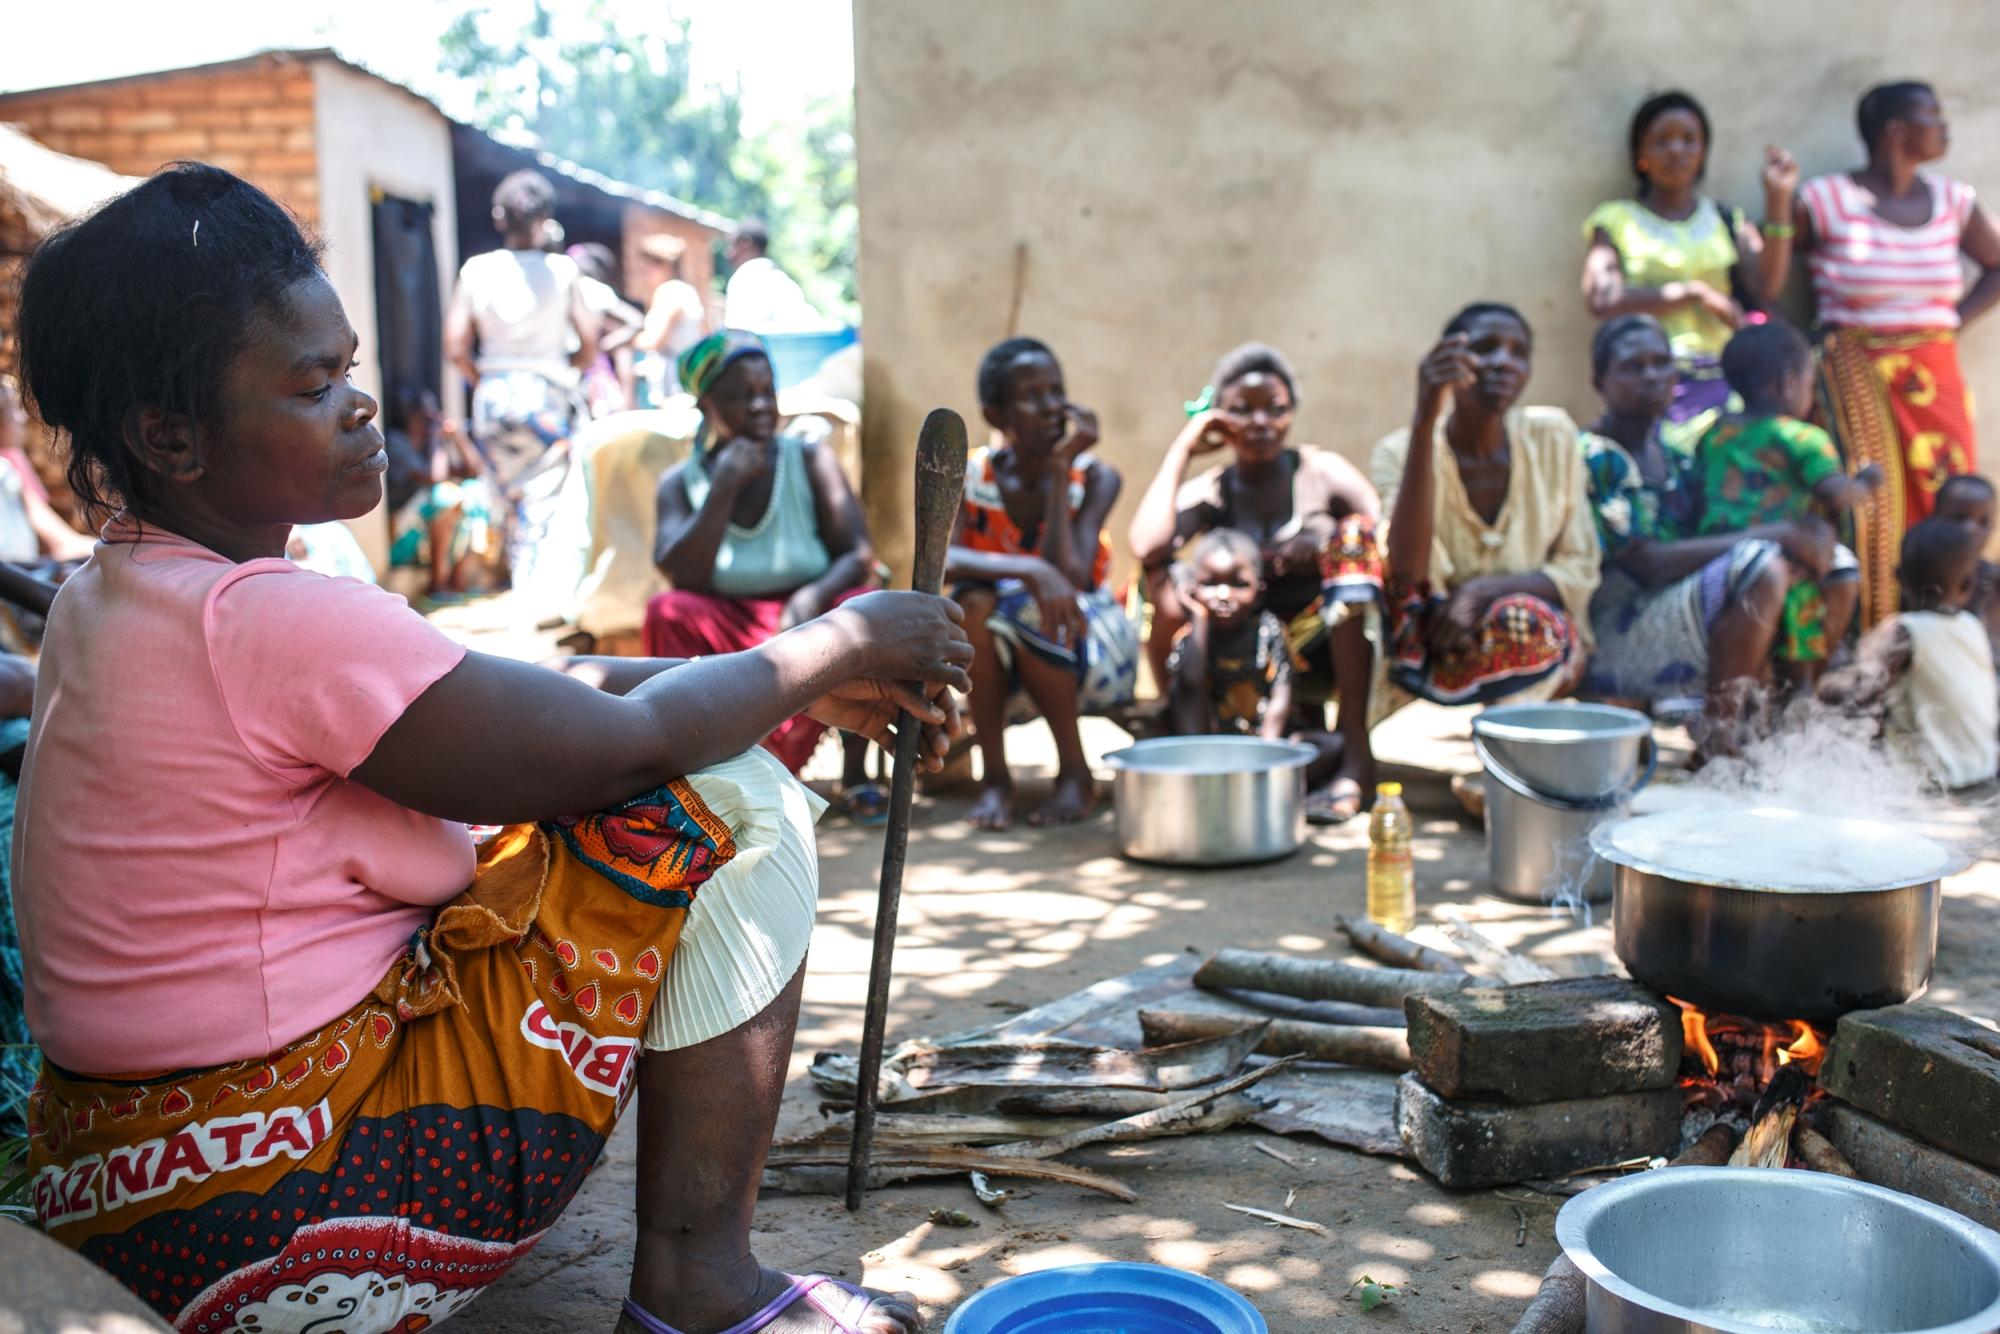 Women in Pitala, a small village near Lake Malawi in the north of the country, cooking over an open 'three-stone' fire.